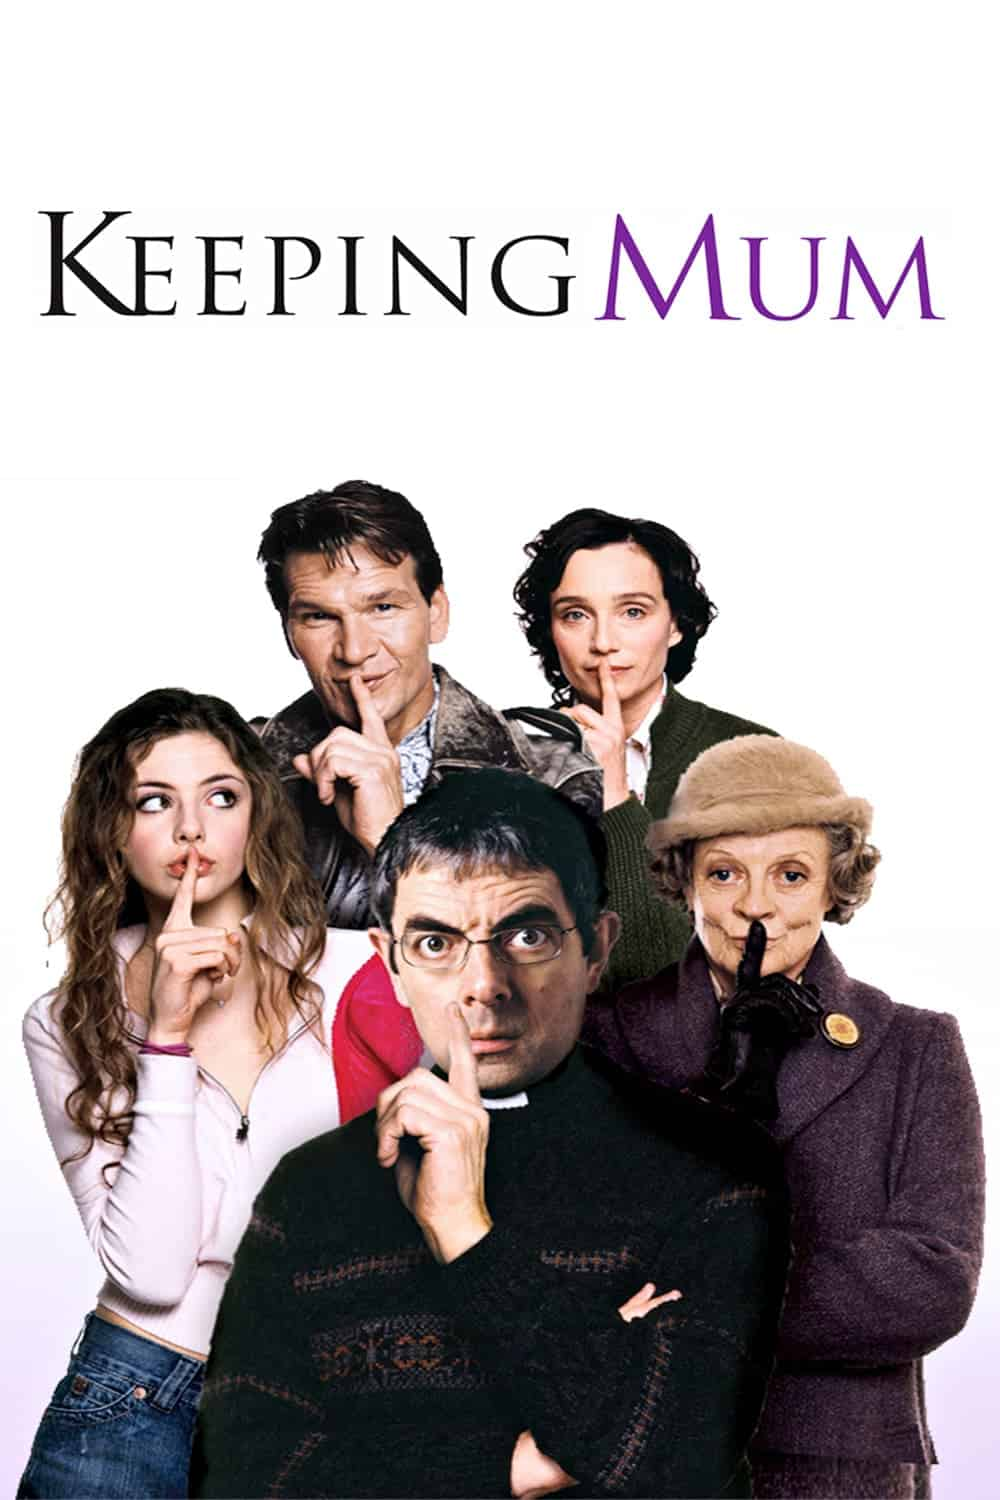 Keeping Mum, 2005